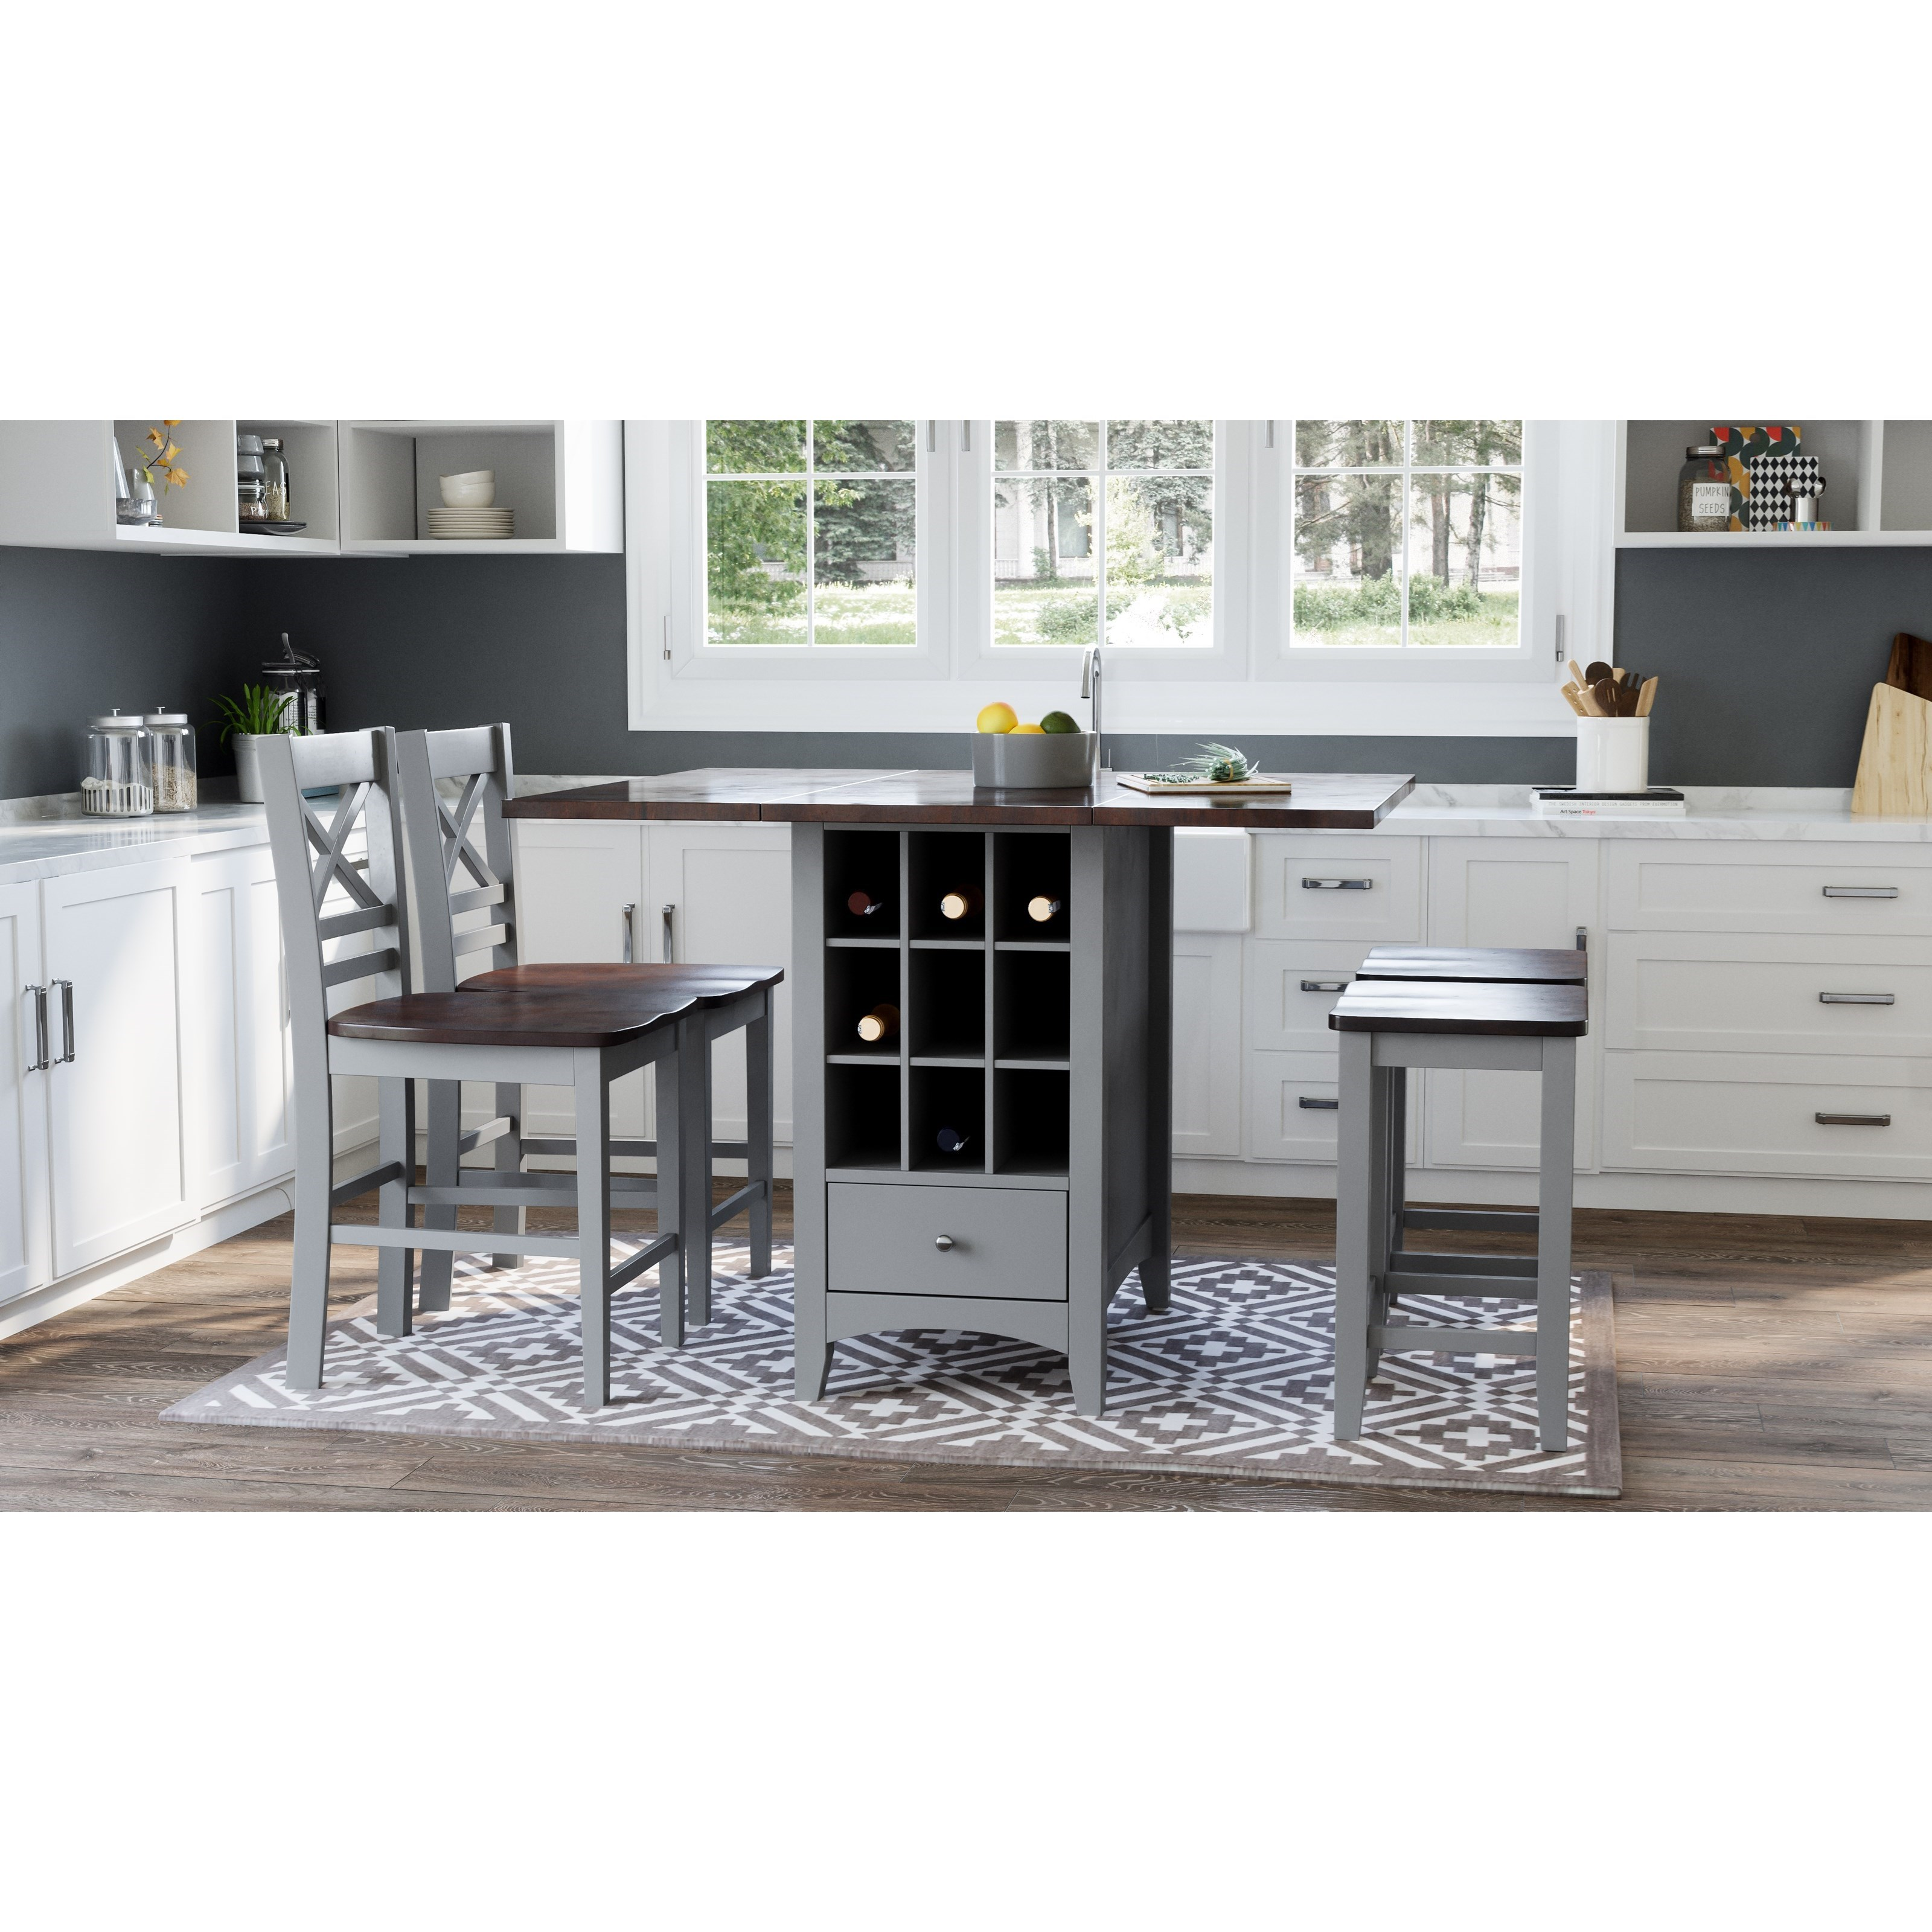 Asbury Park 5-Piece Counter Height Table and Stool Set by Jofran at Jofran